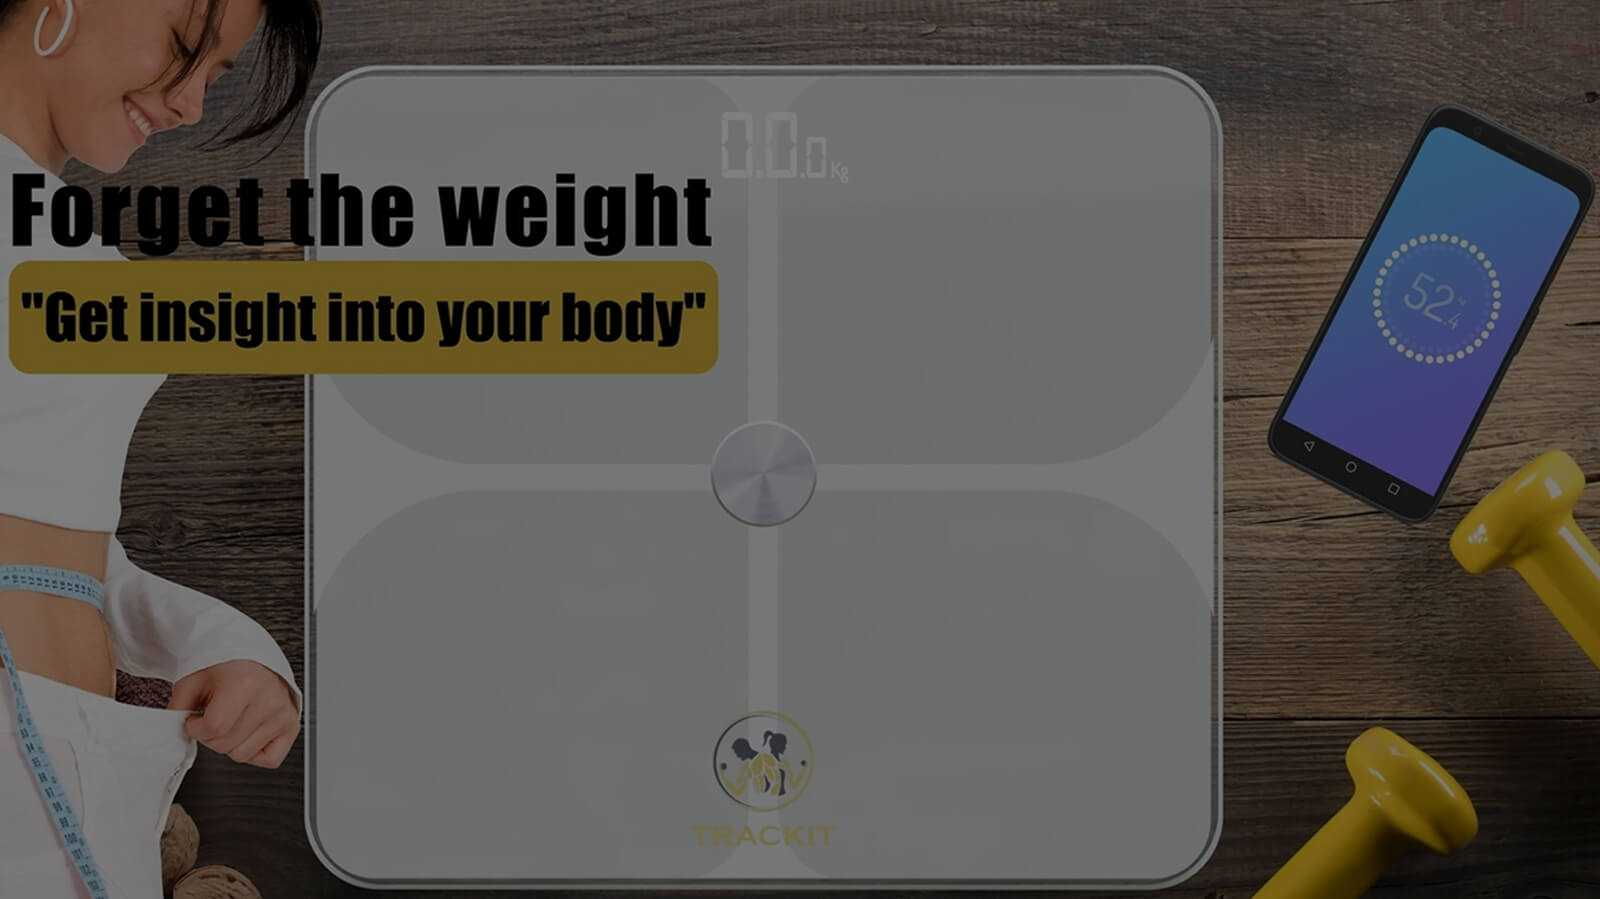 Forget the weight - Get insight into your body